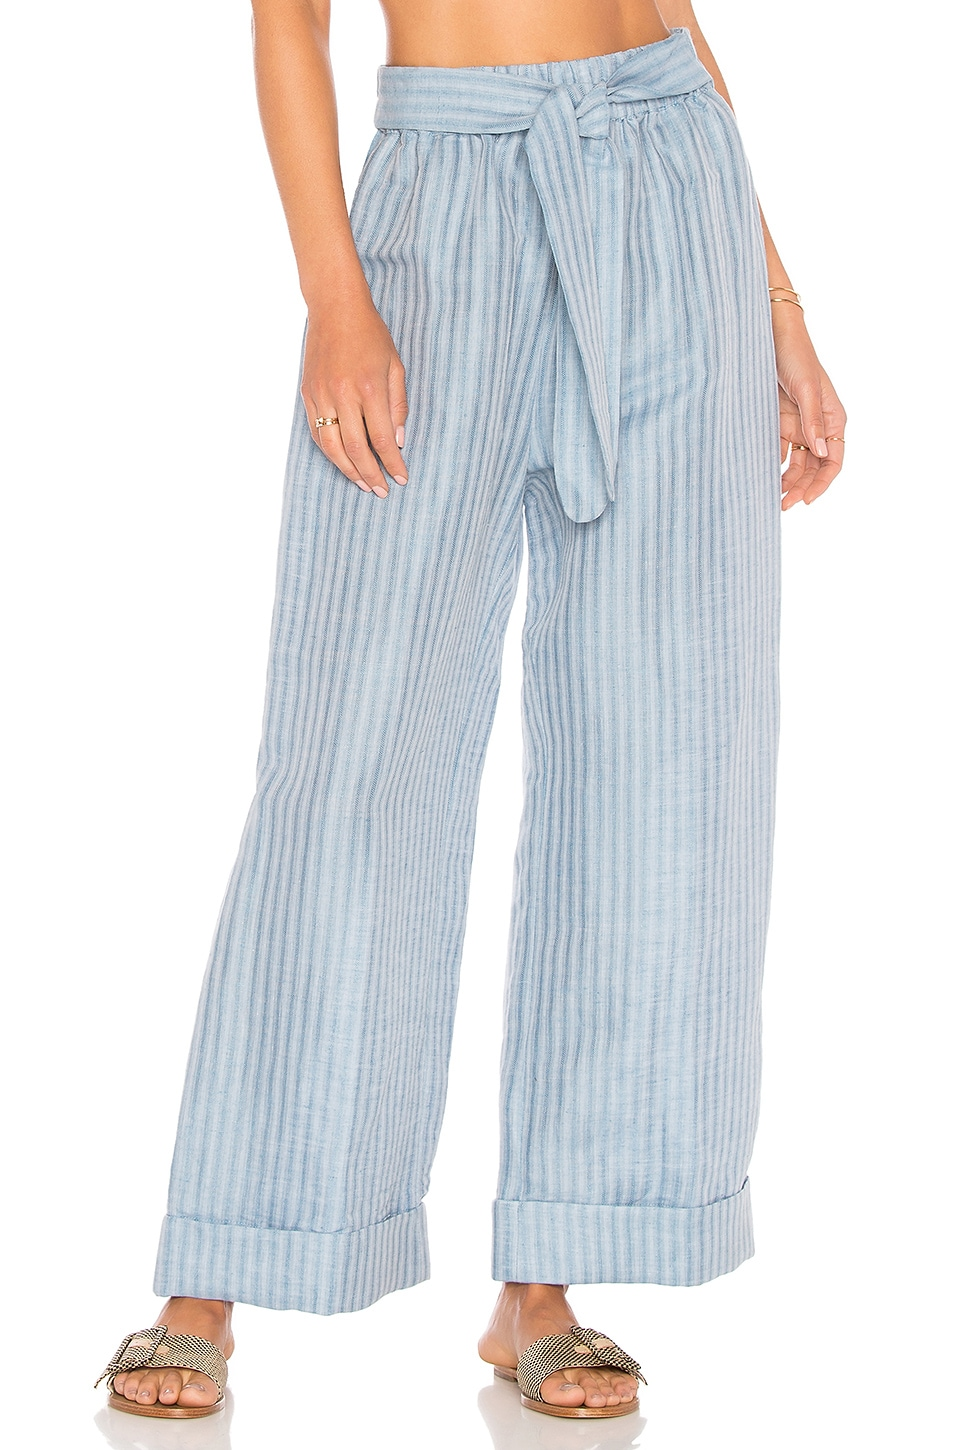 Mara Hoffman Sasha Pant in Light Denim